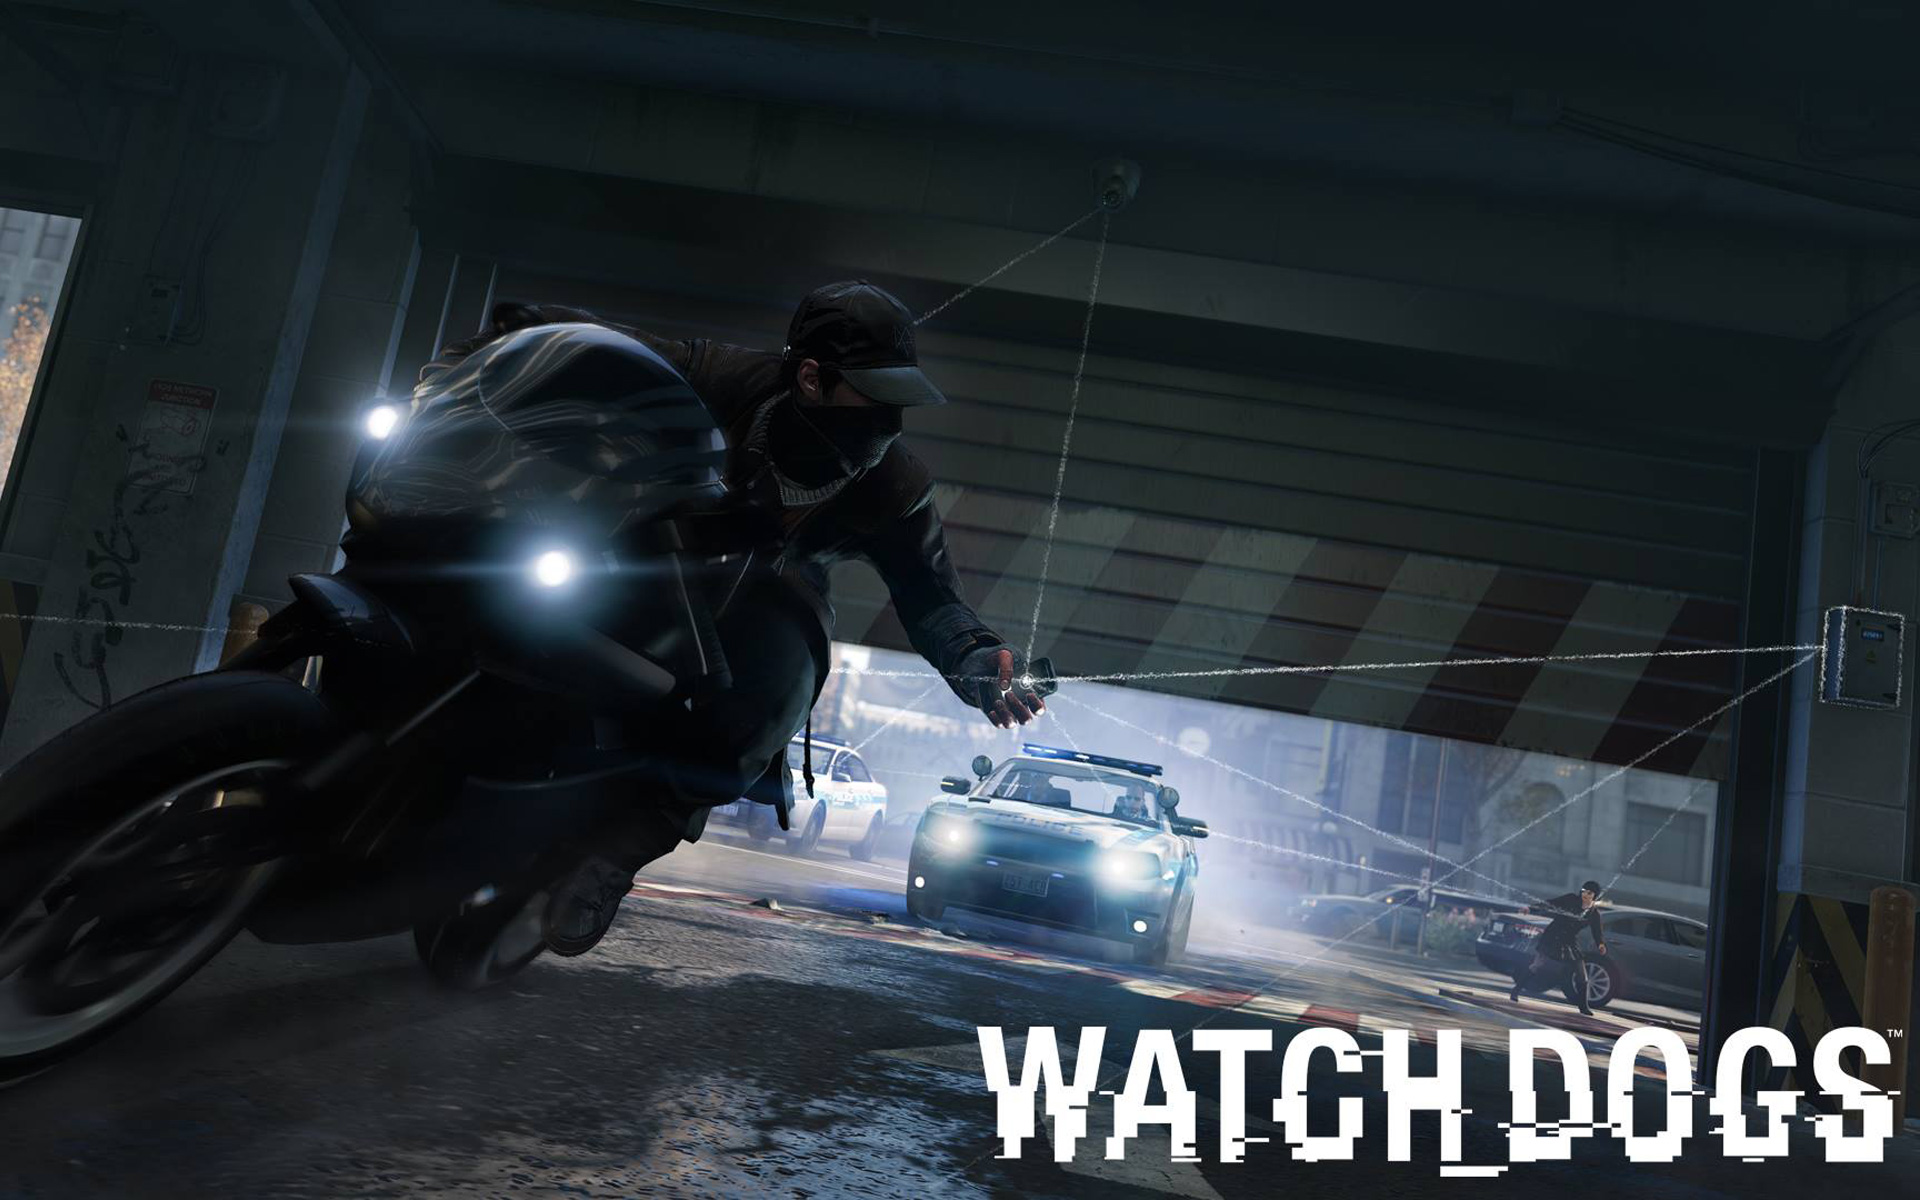 watch dogs wallpapers iphone